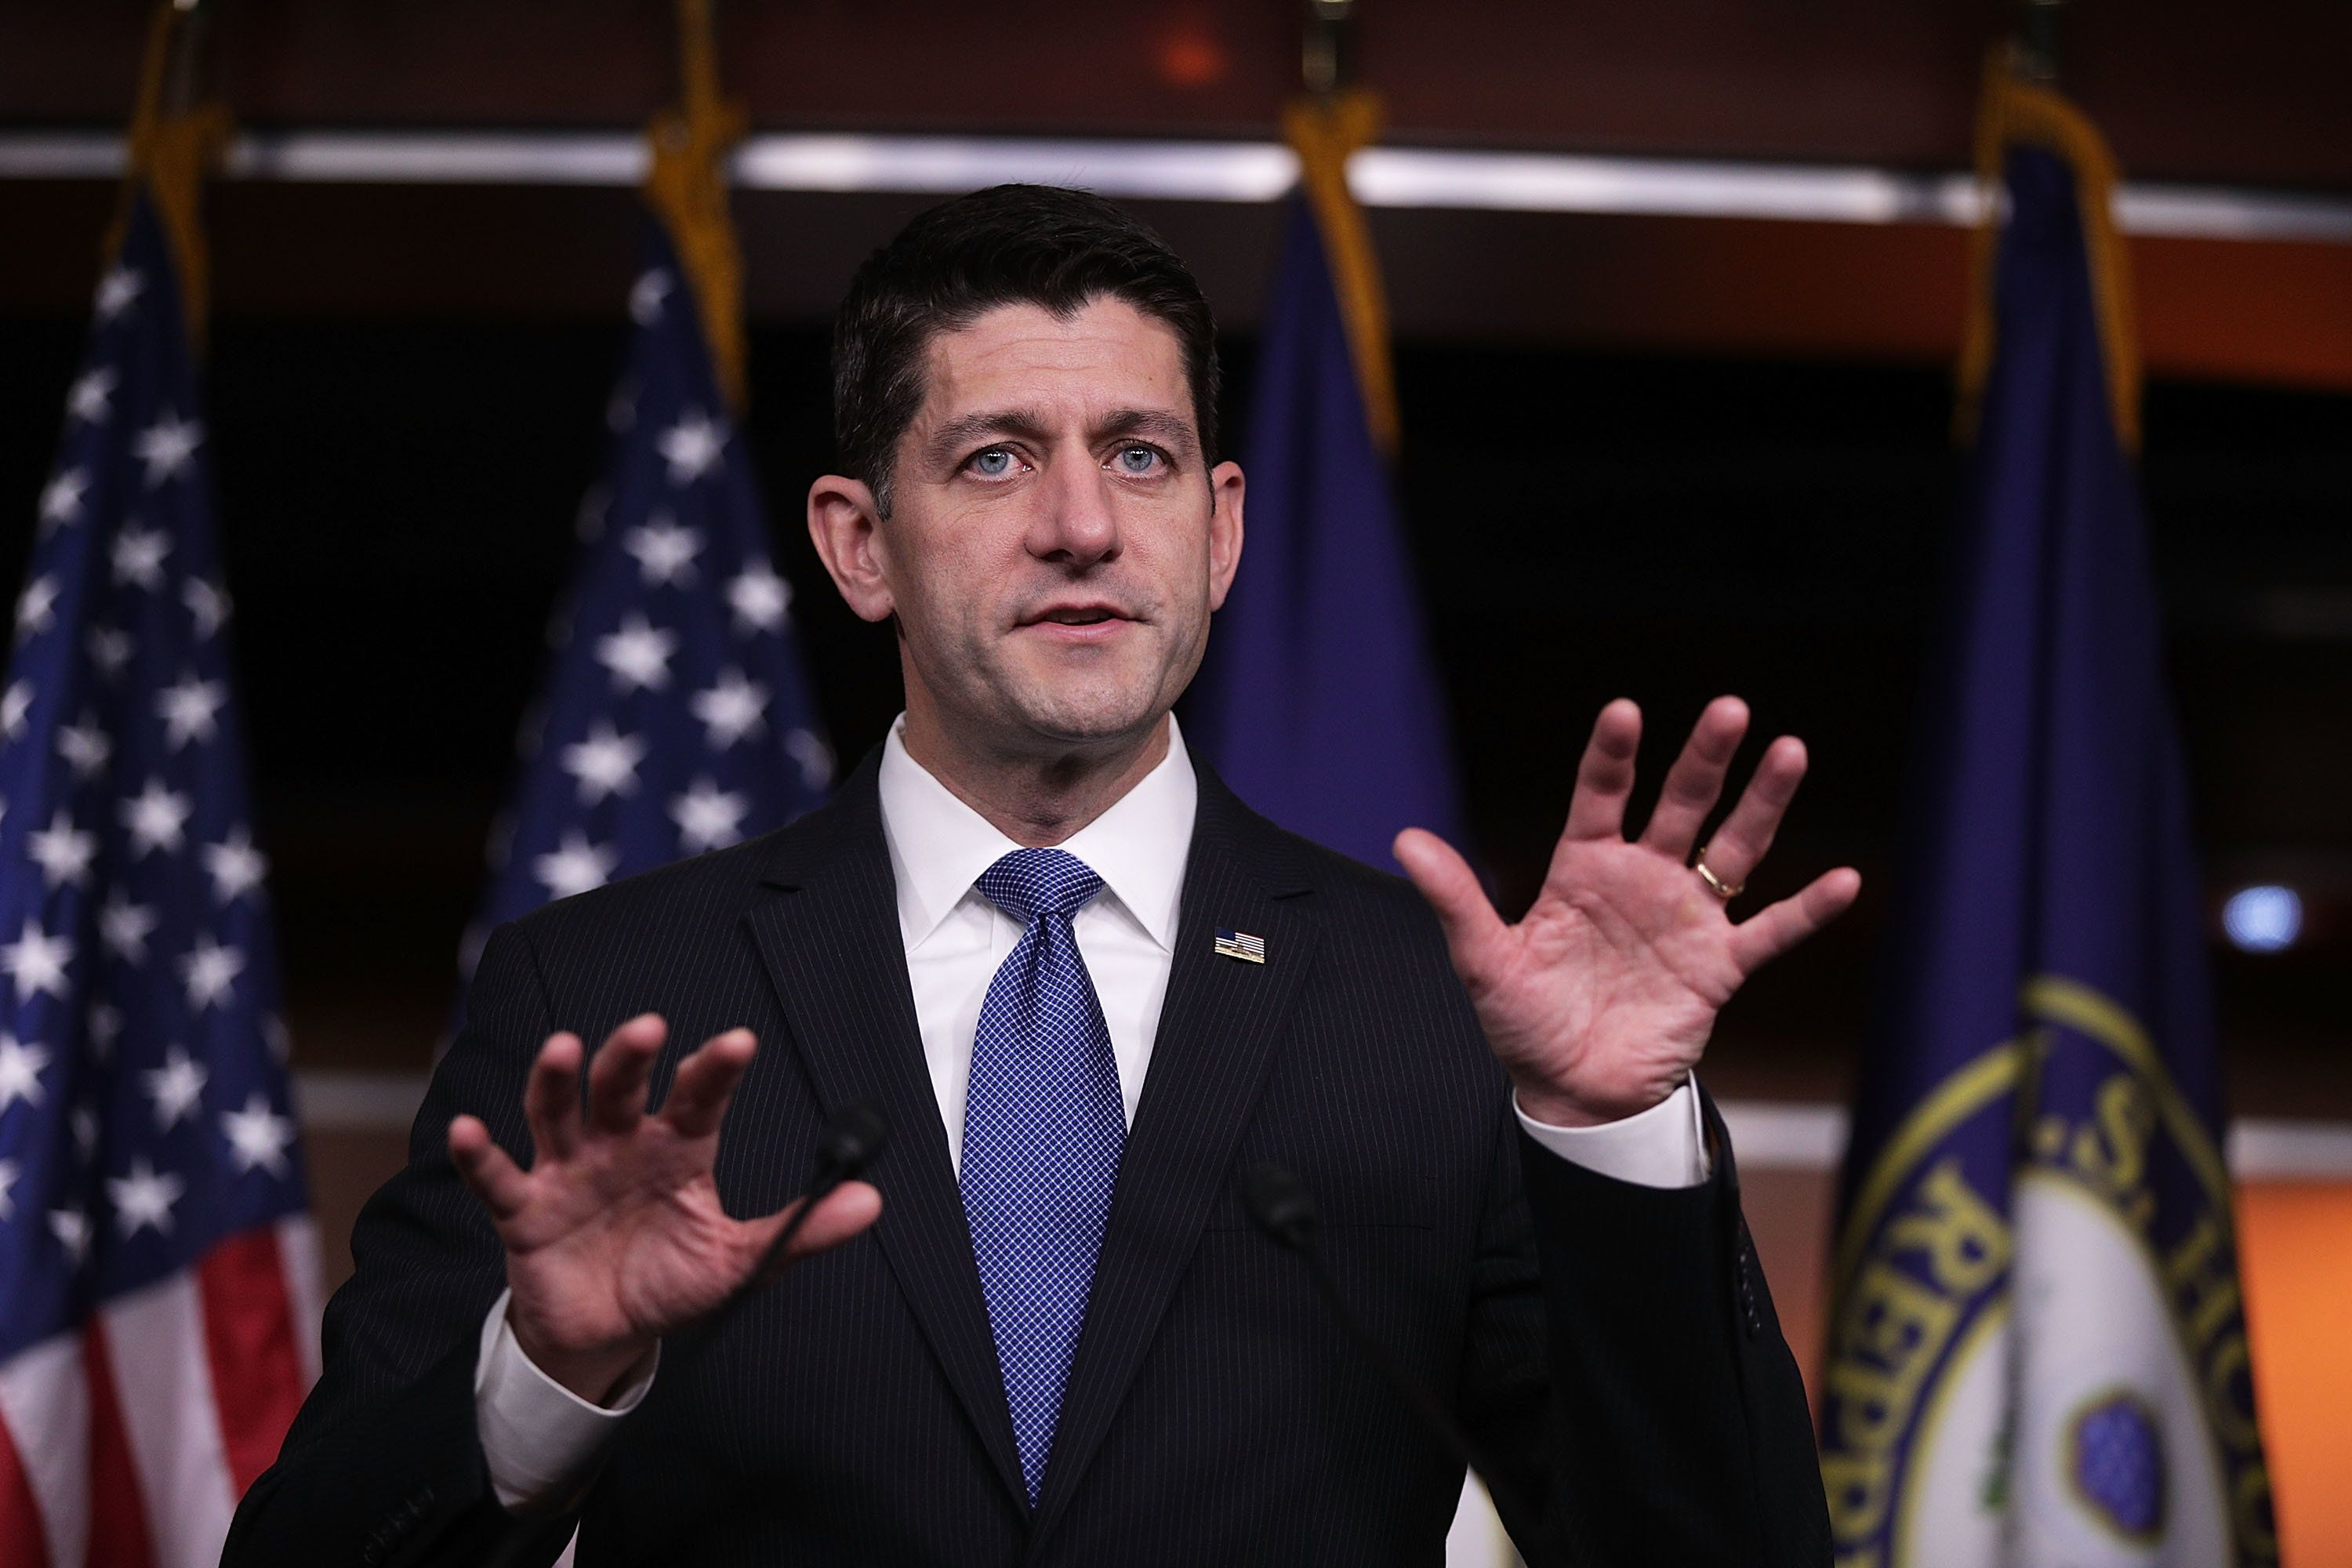 WASHINGTON, DC - NOVEMBER 09:  U.S. Speaker of the House Rep. Paul Ryan (R-WI) speaks during a news conference November 9, 2017 on Capitol Hill in Washington, DC. Speaker Ryan answered questions about the proposed GOP tax bill.  (Photo by Alex Wong/Getty Images)